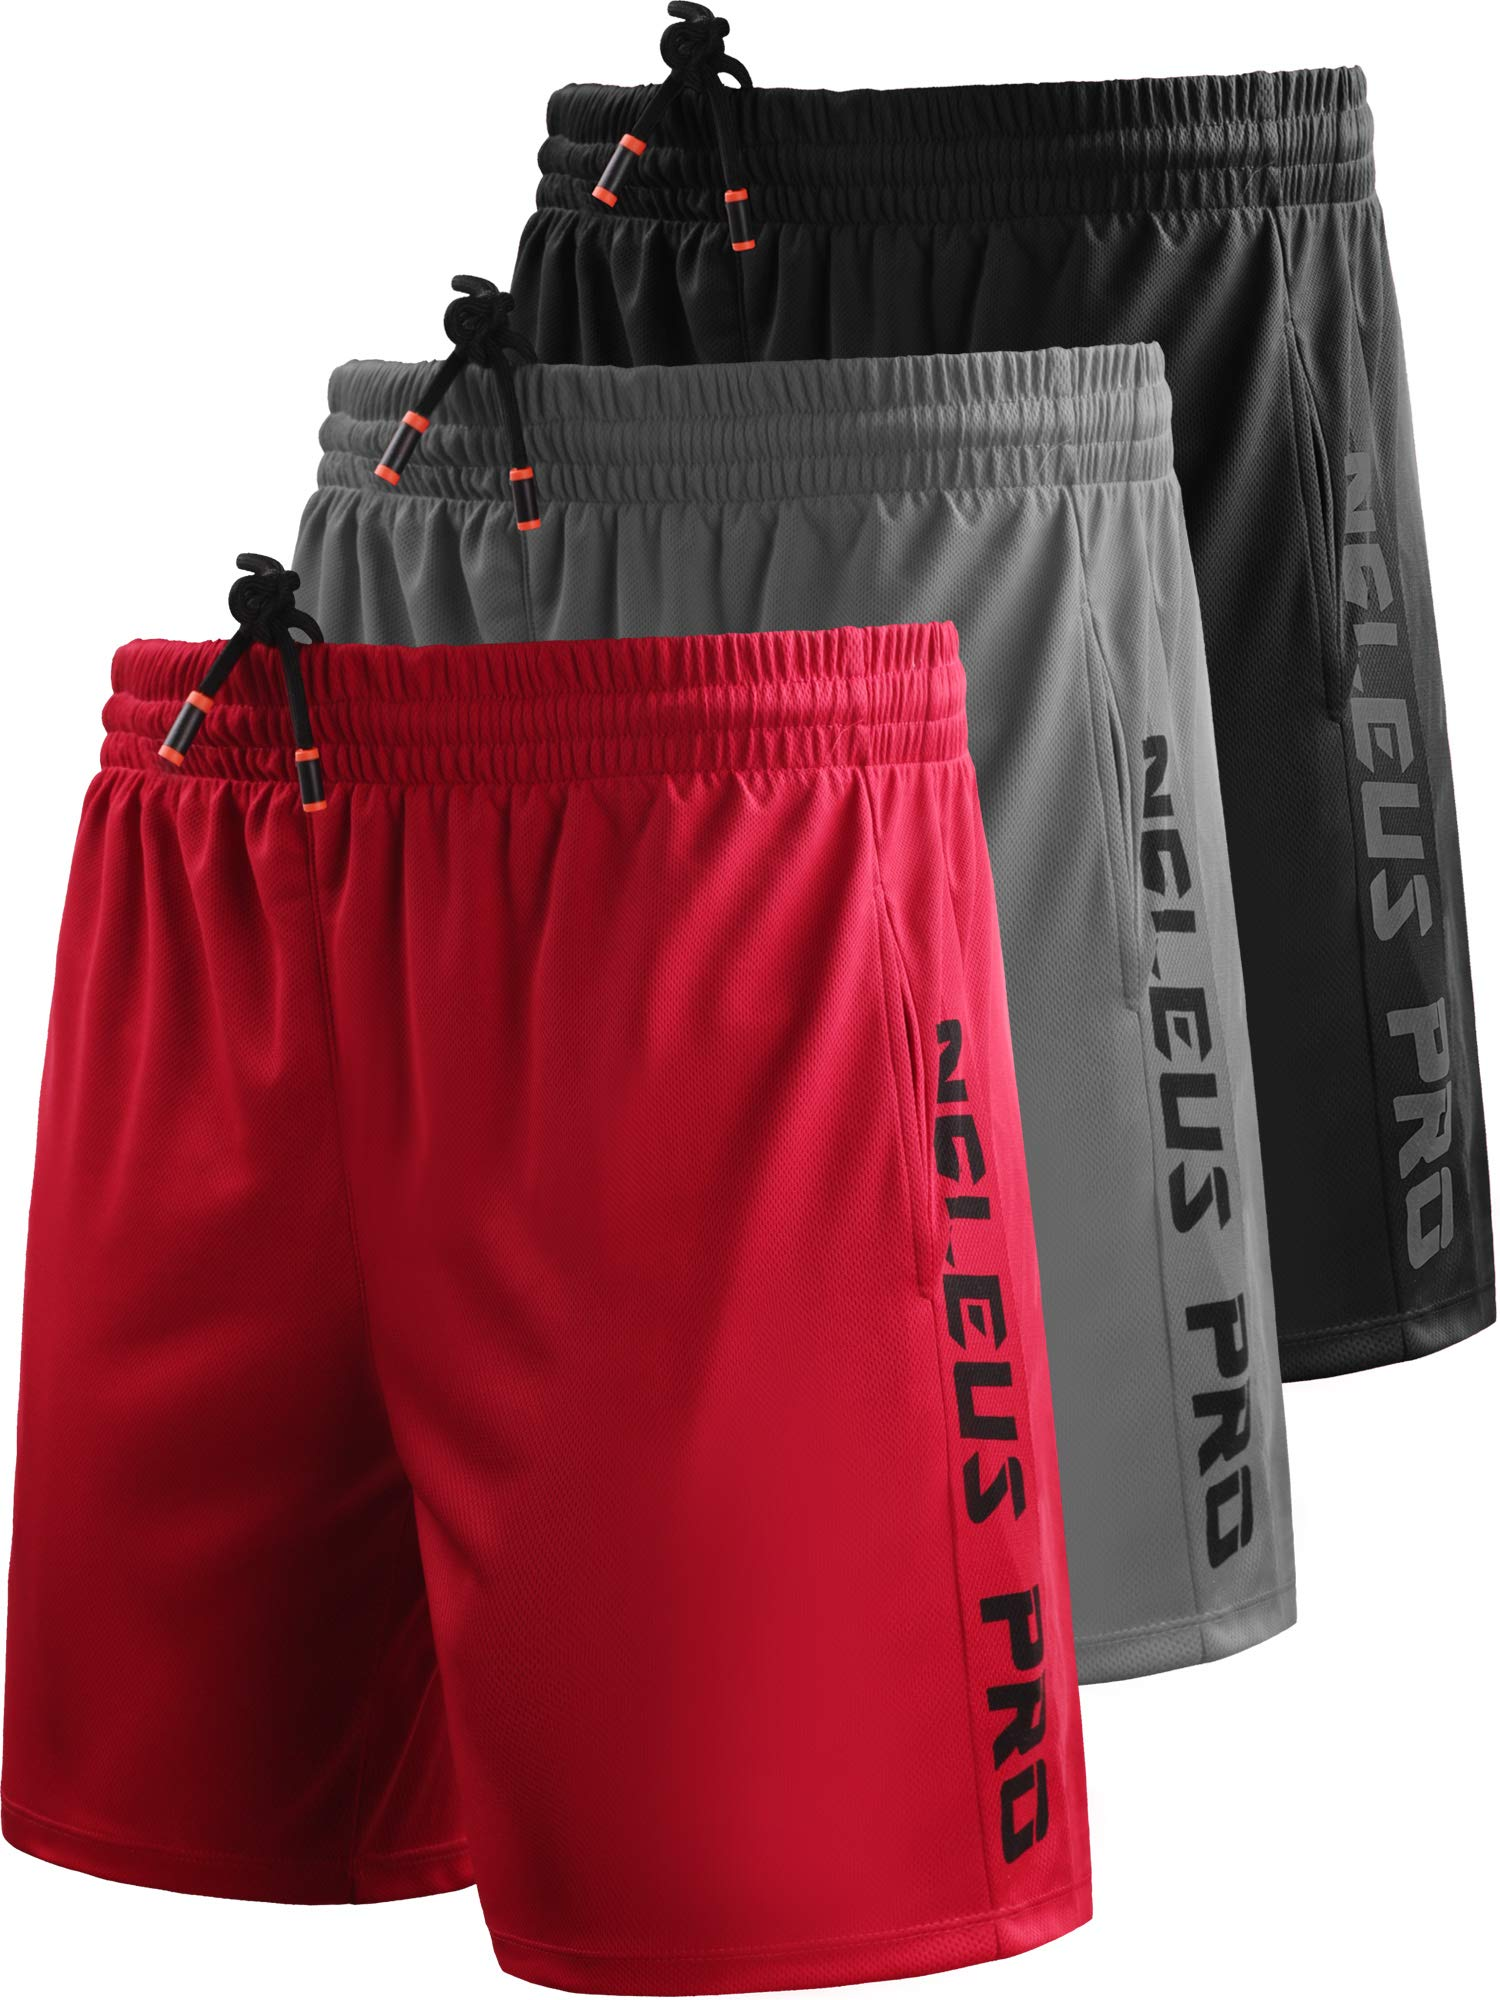 Neleus Men's 7'' Workout Running Shorts with Pockets,6056,3 Pack,Black/Grey/Red,XL,EU 2XL by Neleus